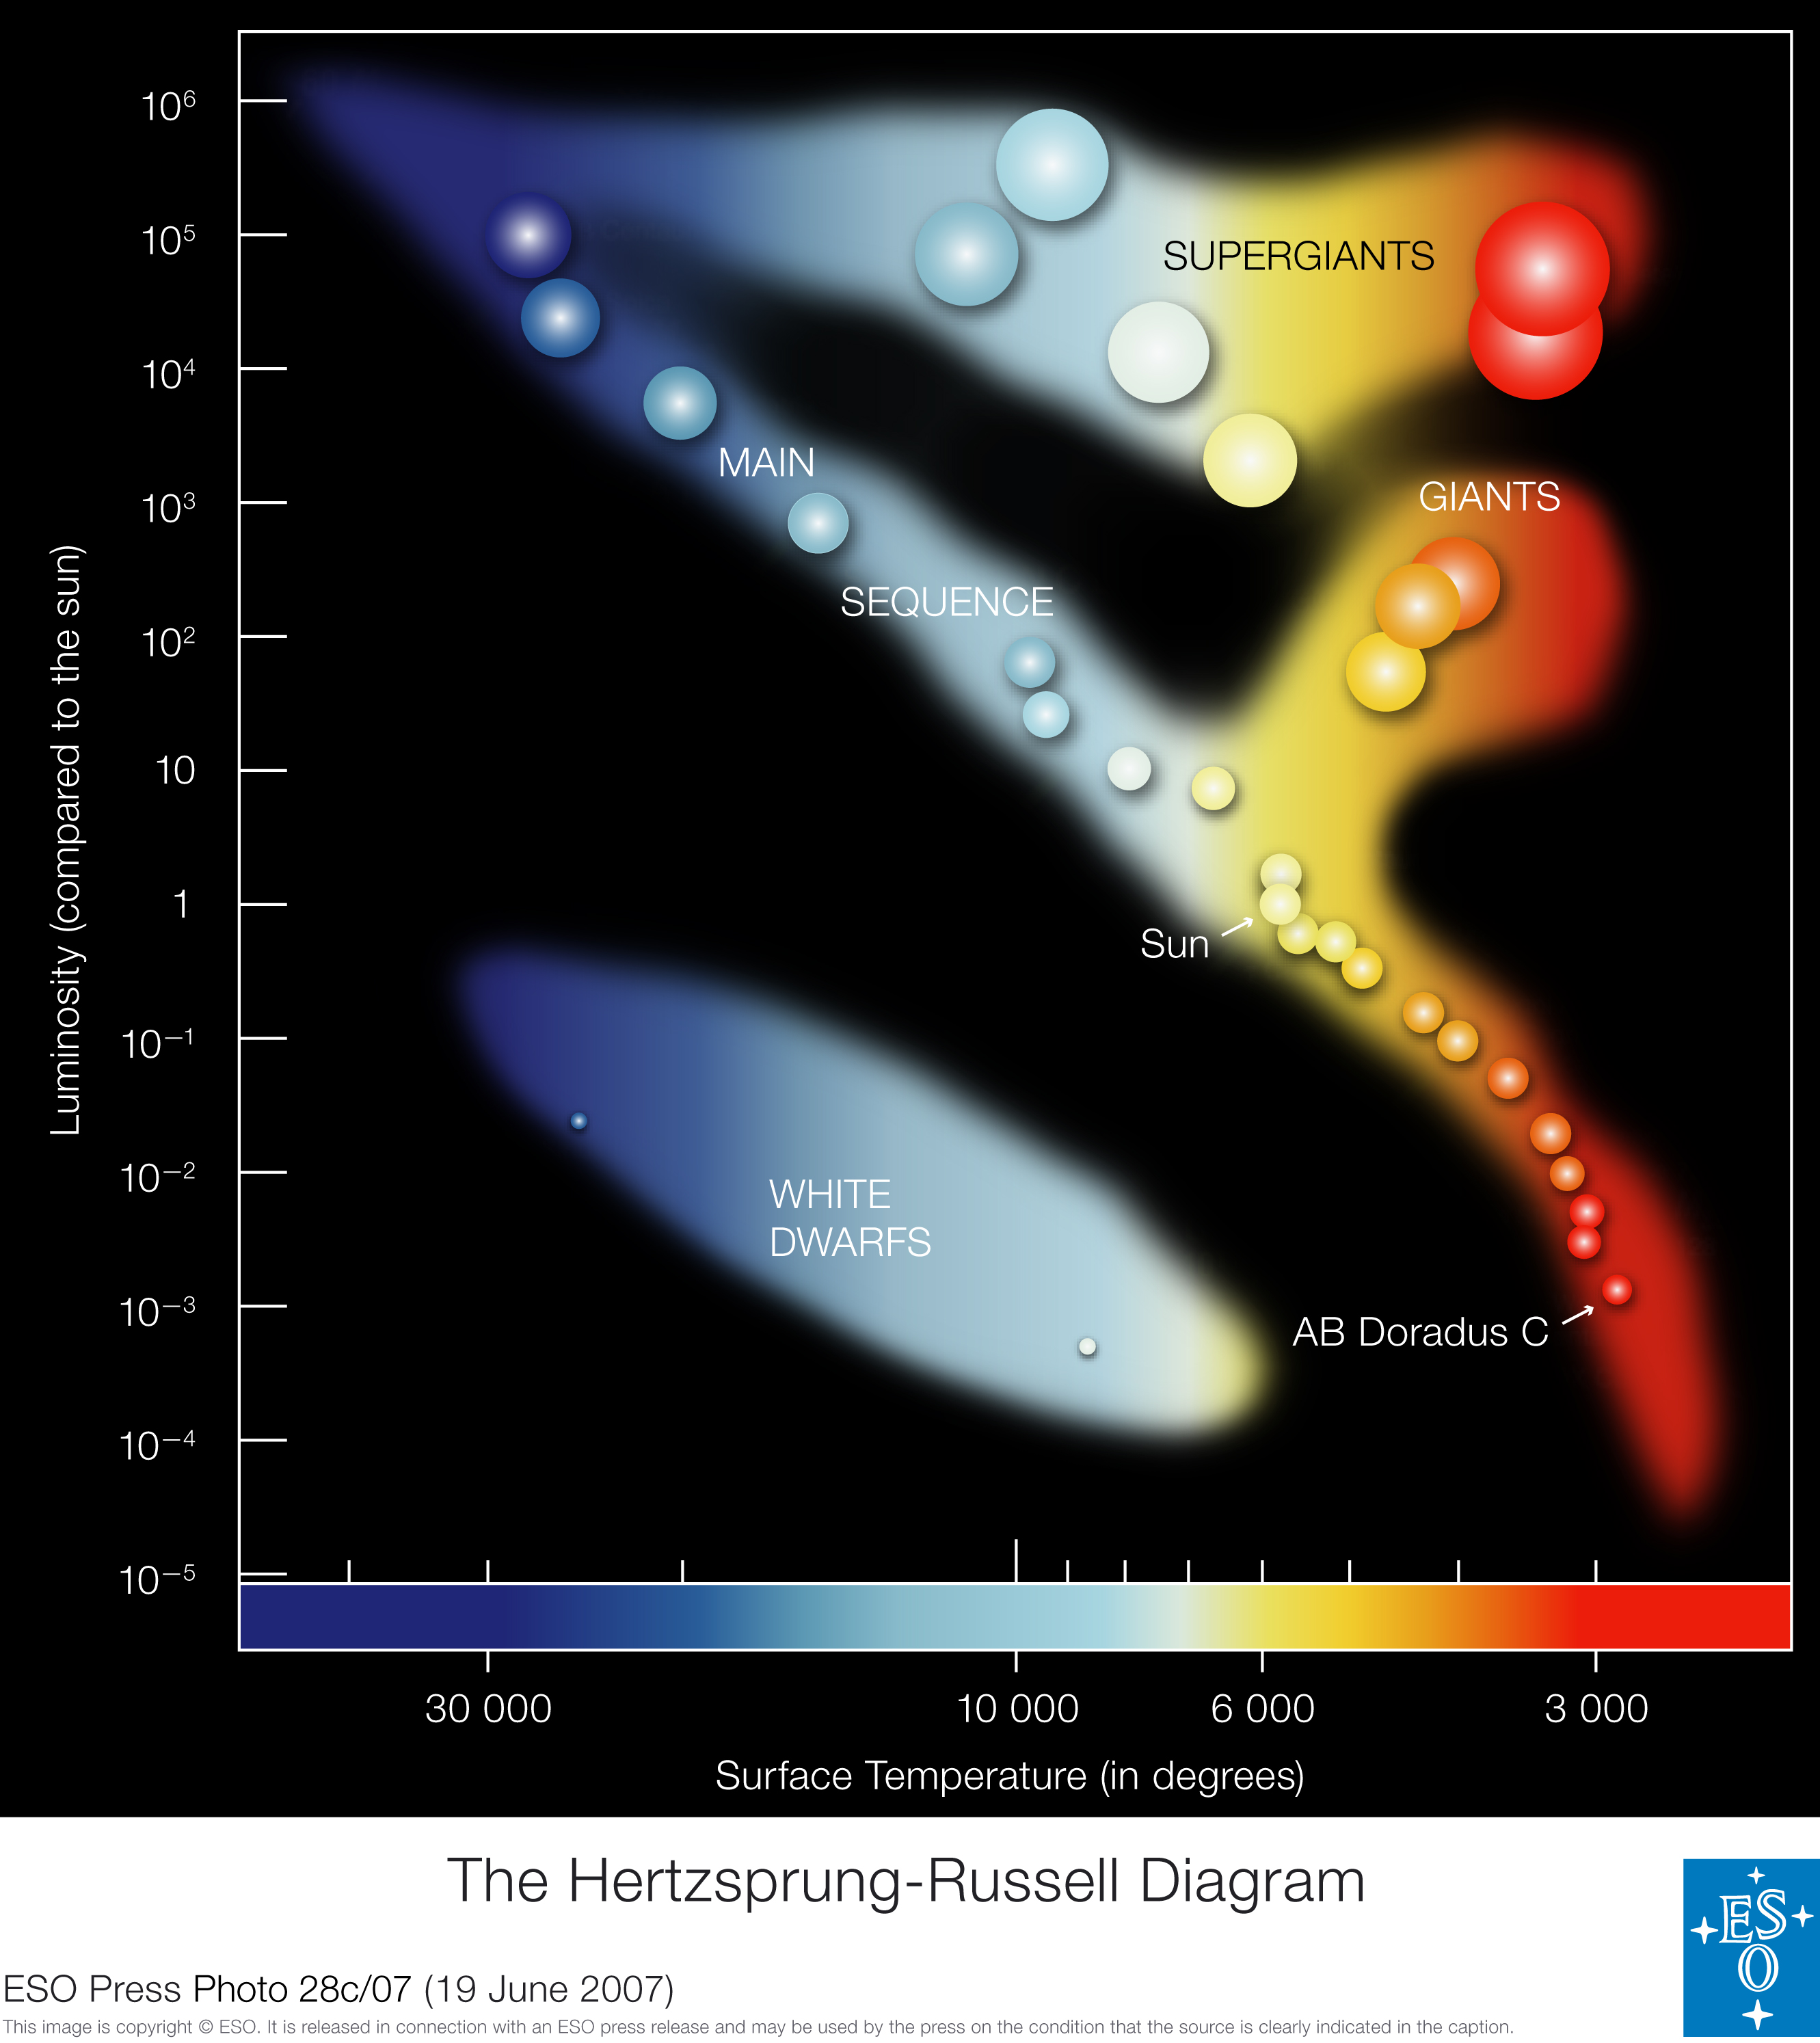 Worksheets Hertzsprung-russell Diagram Worksheet fileeso hertzsprung russell diagram by jpg wikimedia commons jpg